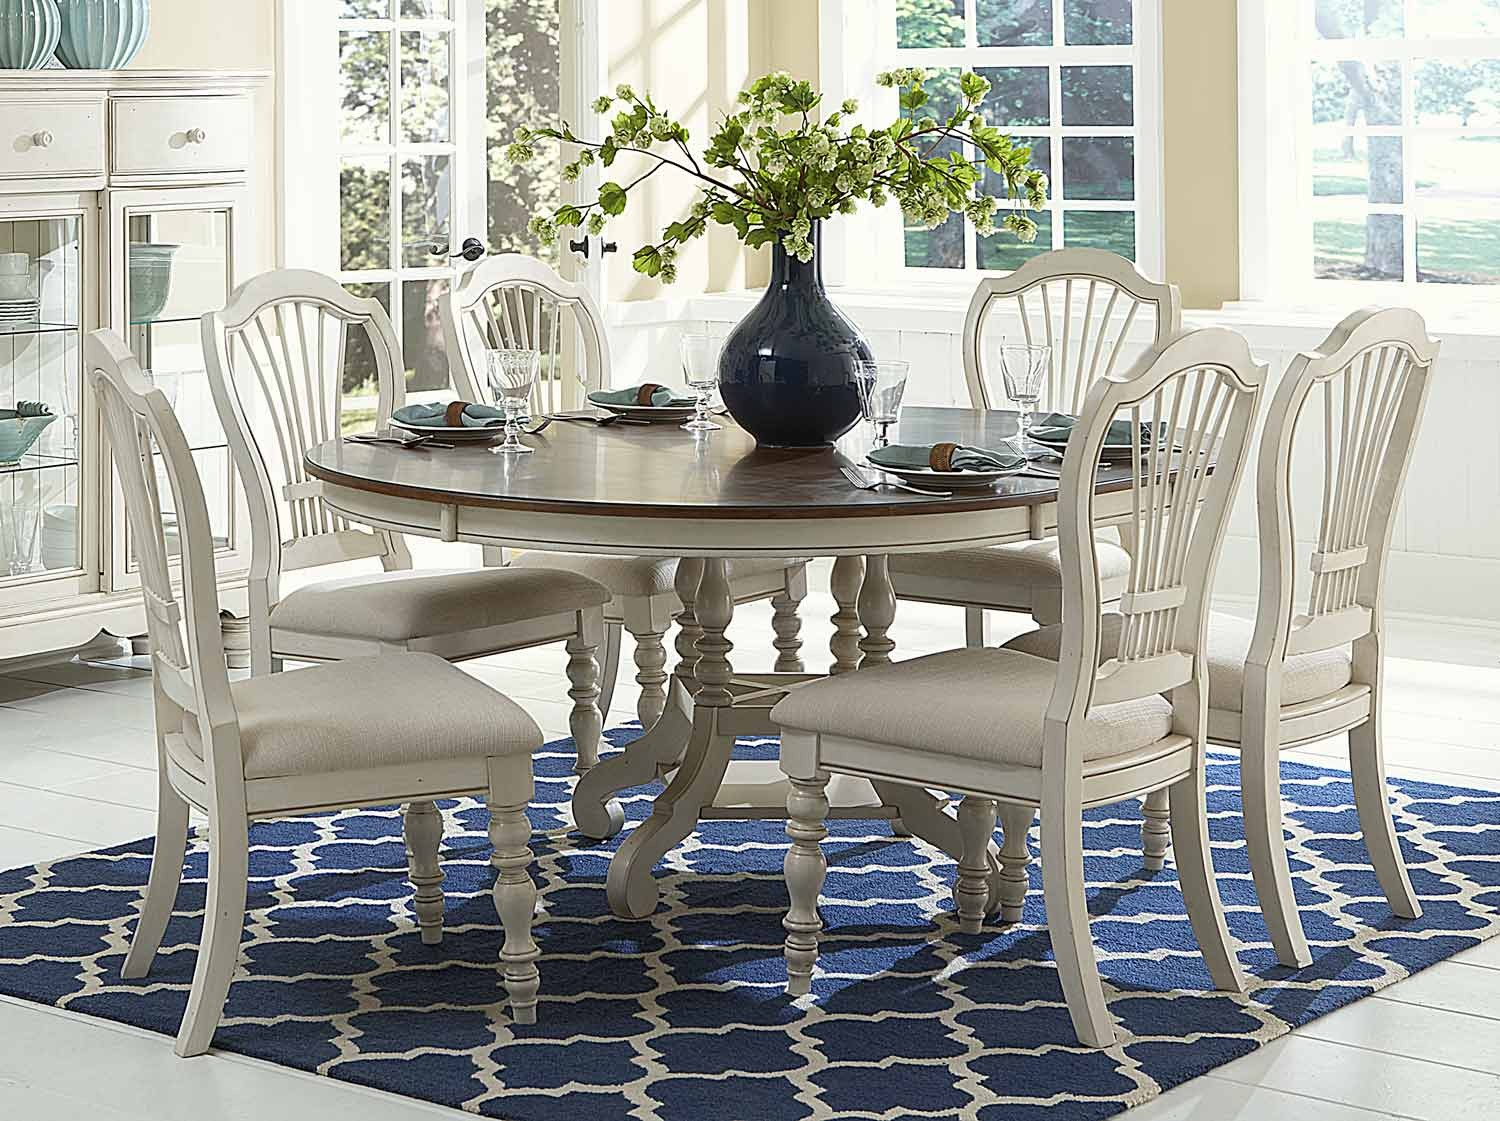 Hillsdale Pine Island 7PC Round Dining Set - Old White